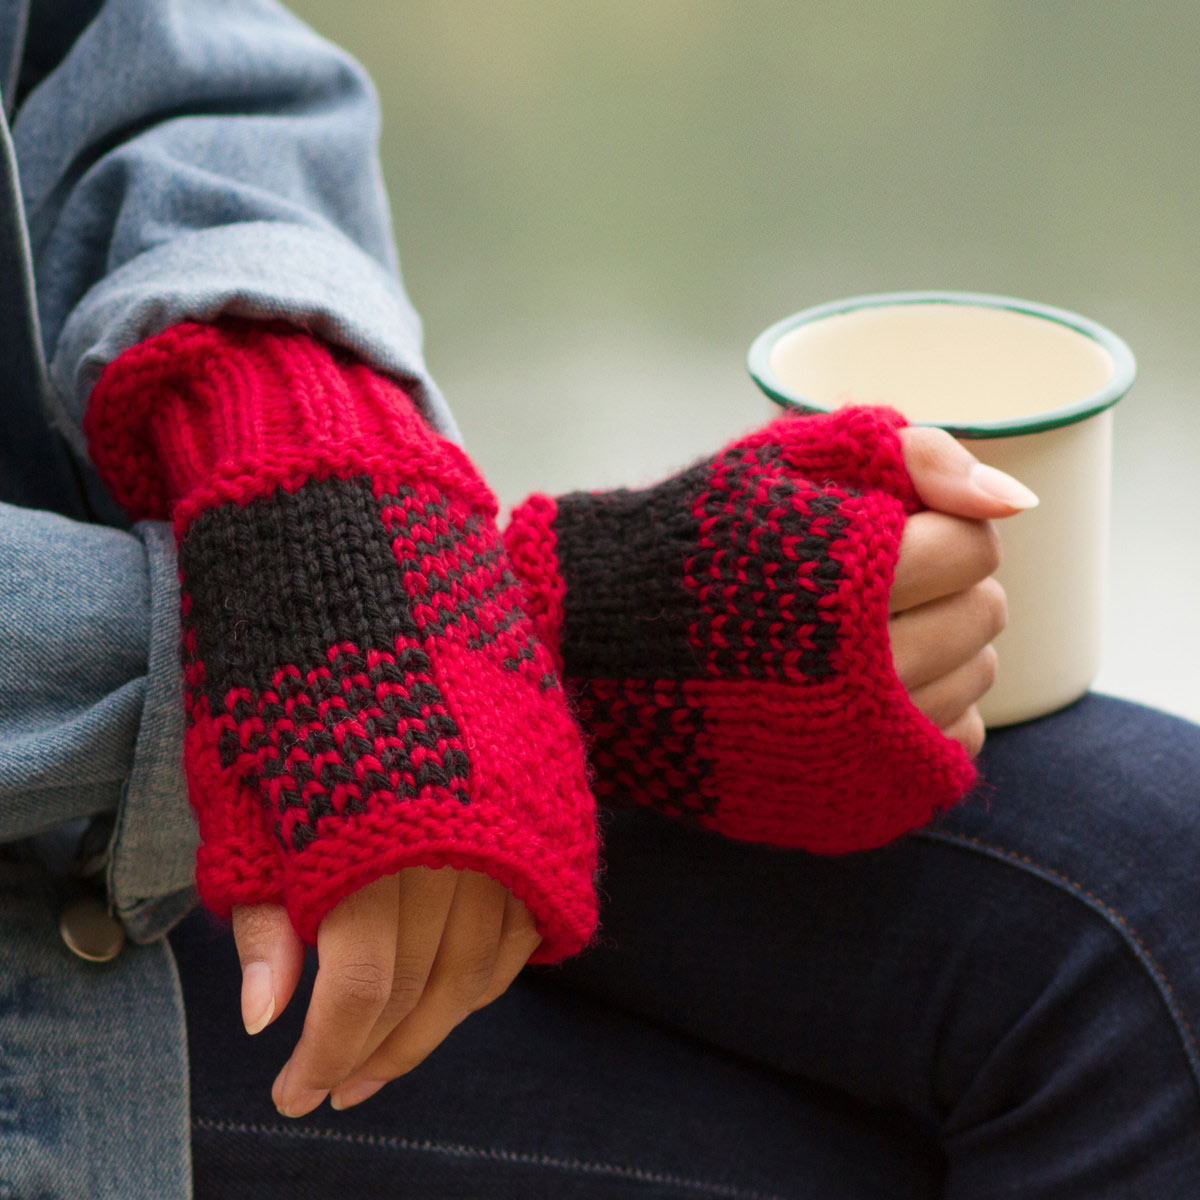 Hands crossed on lap, one hand holding a cut of cocoa and both wearing red and black checkered fingerless mitts.